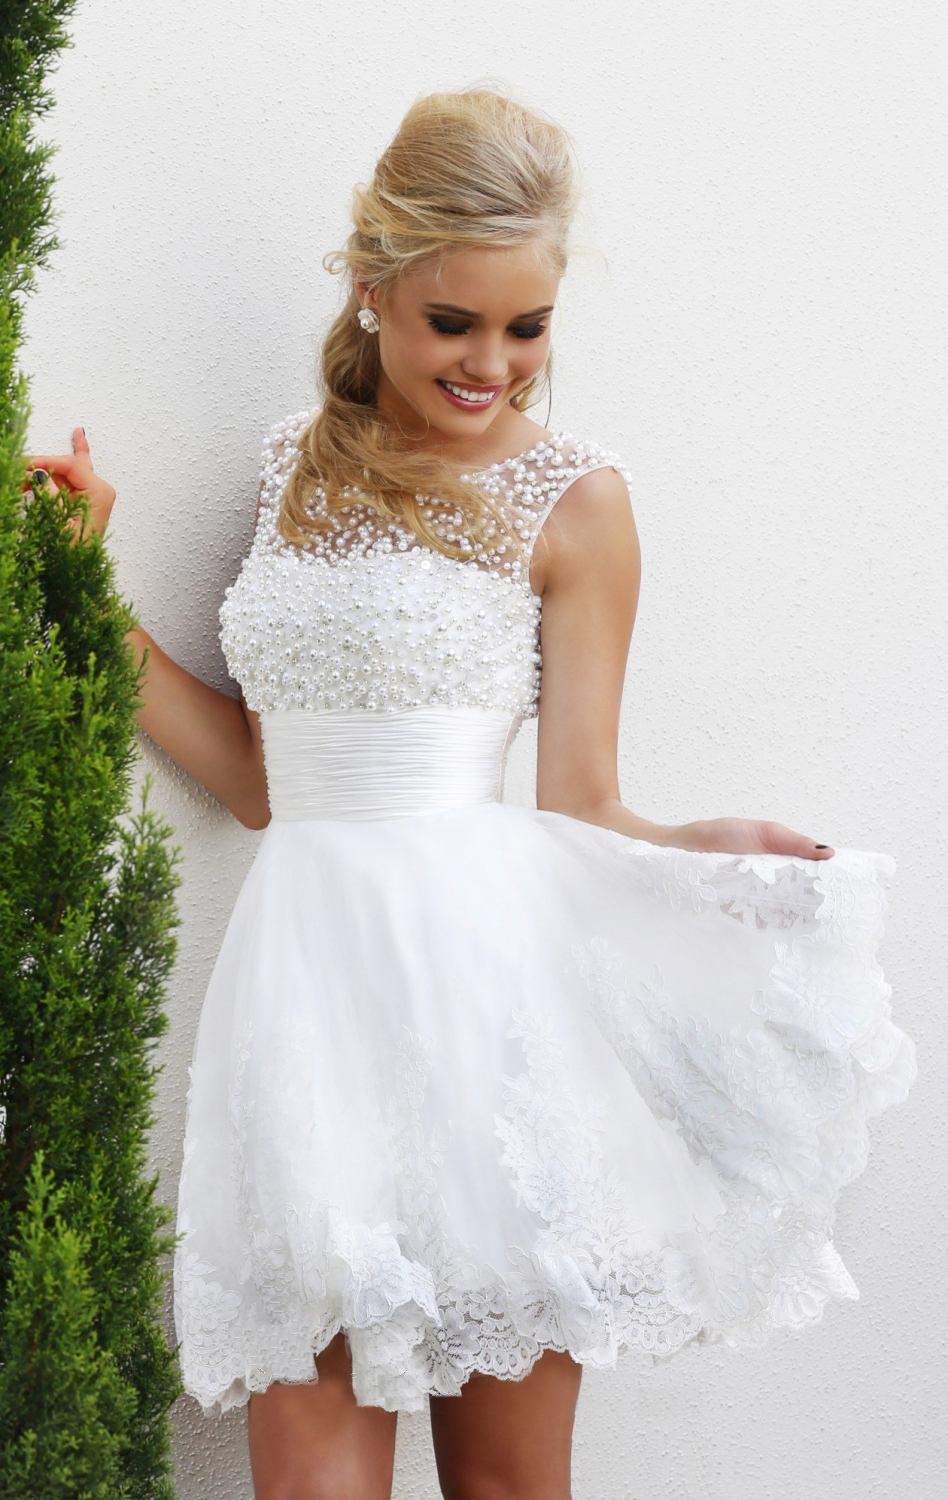 2015 white short wedding dresses the brides sexy lace for Good wedding dresses for short brides